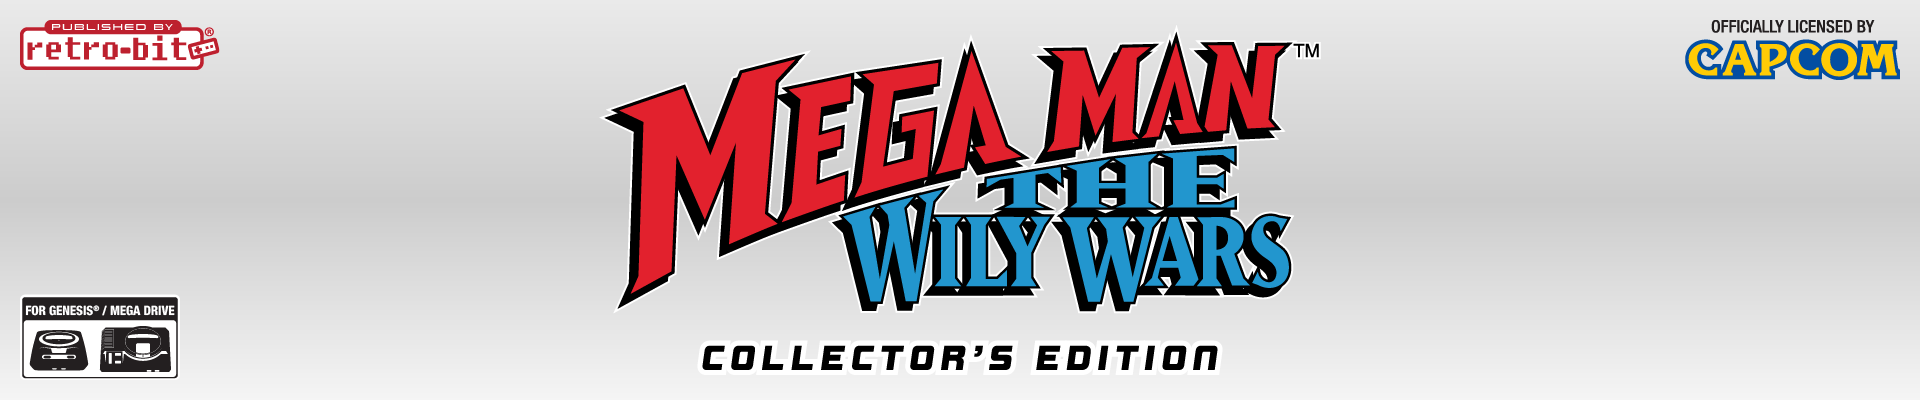 Mega Man: The Wily Wars - Collector's Edition